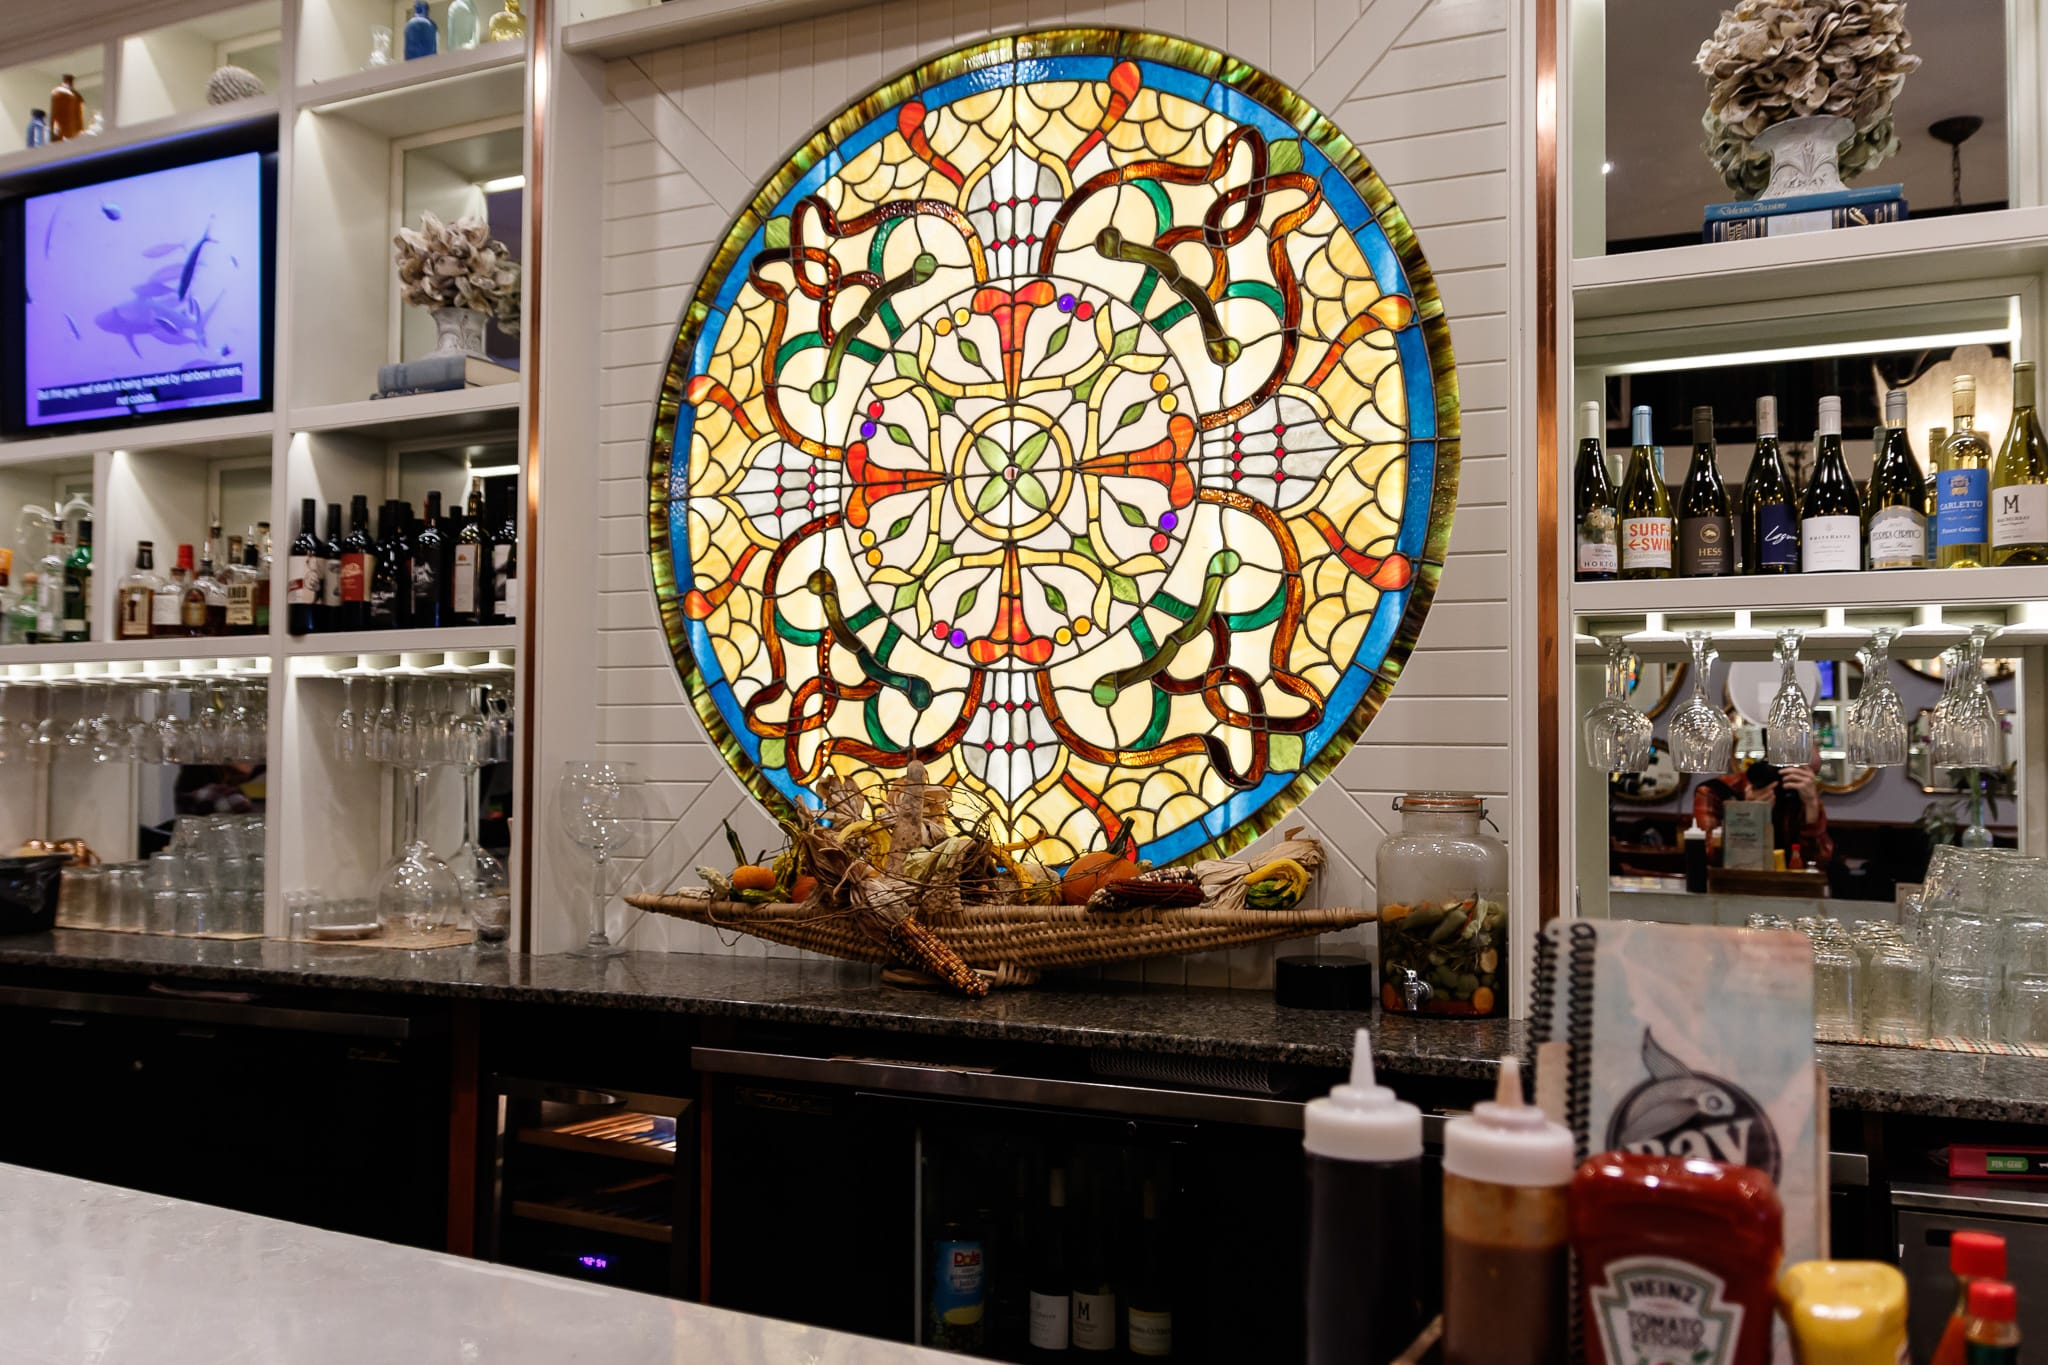 Circle stain-glass window